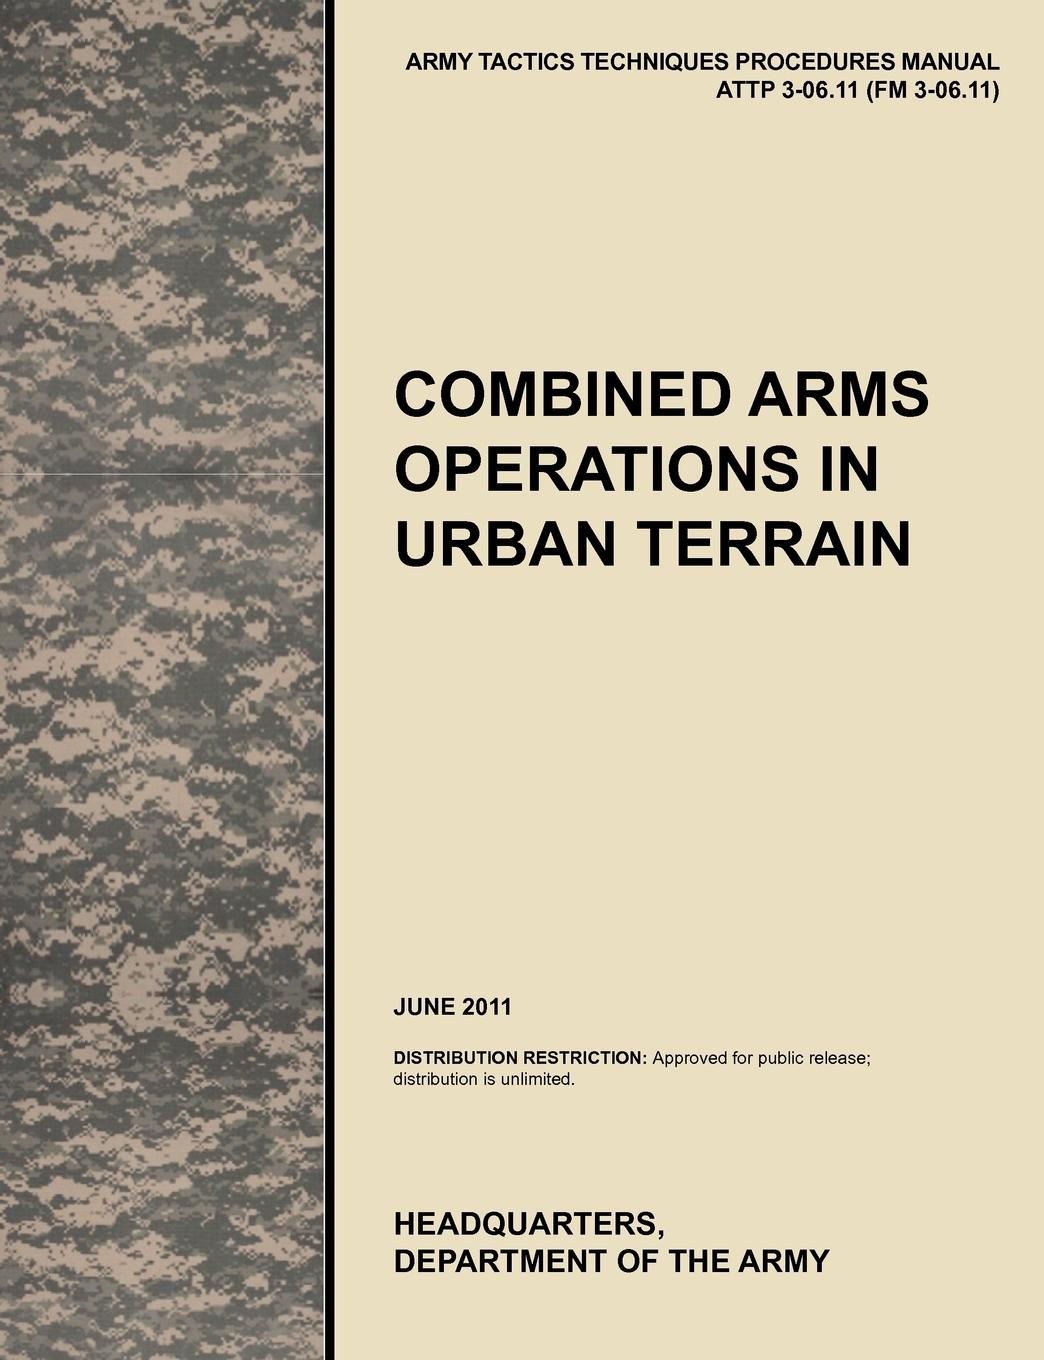 U. S. Army Training and Doctrine Command, Army Maneuver Center of Excellence, U. S. Department of the Combined Arms Operations in Urban Terrain. The Official U.S. Army Tactics, Techniques, and Procedures Manual Attp 3-06.11 (FM 3-06.11), June 2011 comparison of rural and urban quality of life of bolpur p s